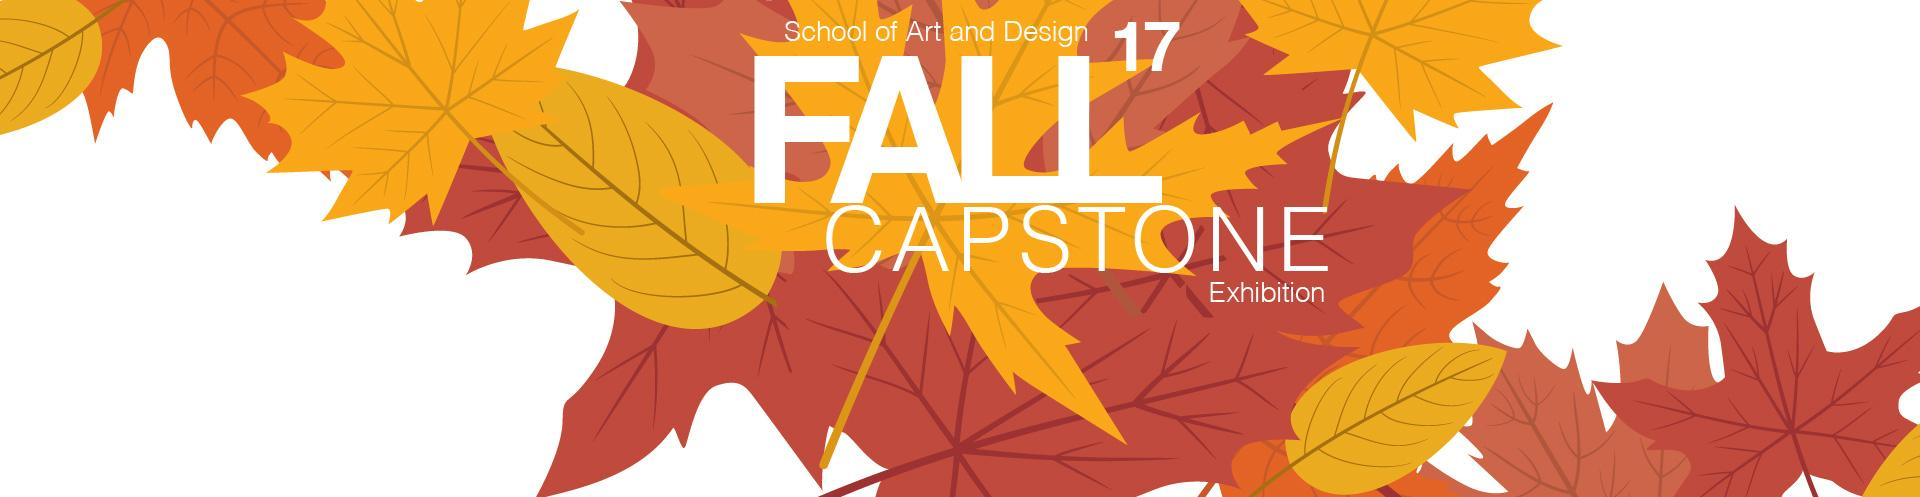 Studio Art Capstone Exhibition